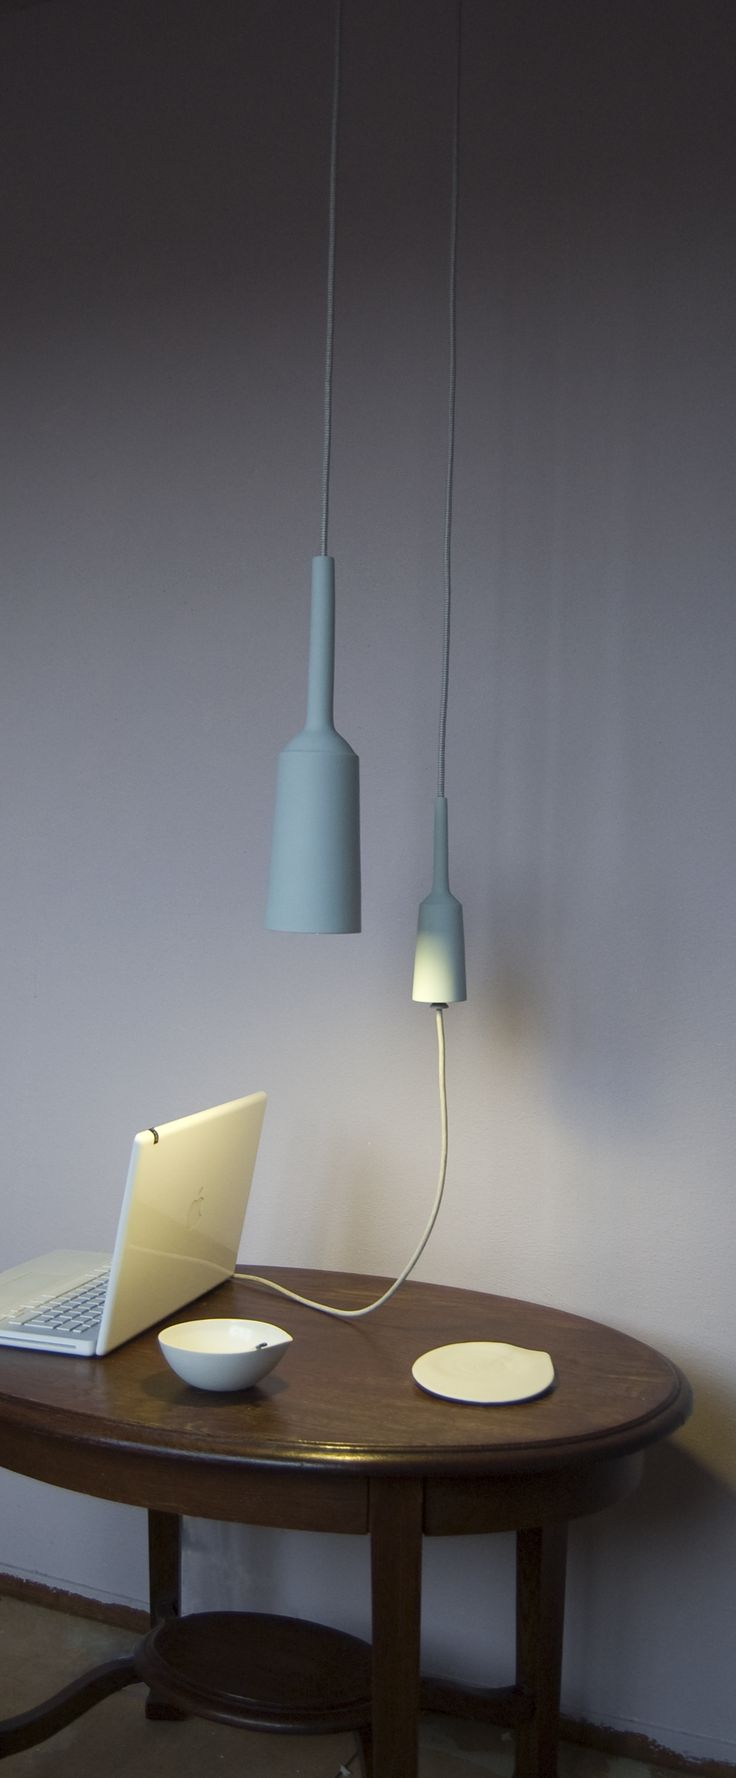 Porcelain lamps and sockets : Lotte Douwes --- I think it's quite clever :)